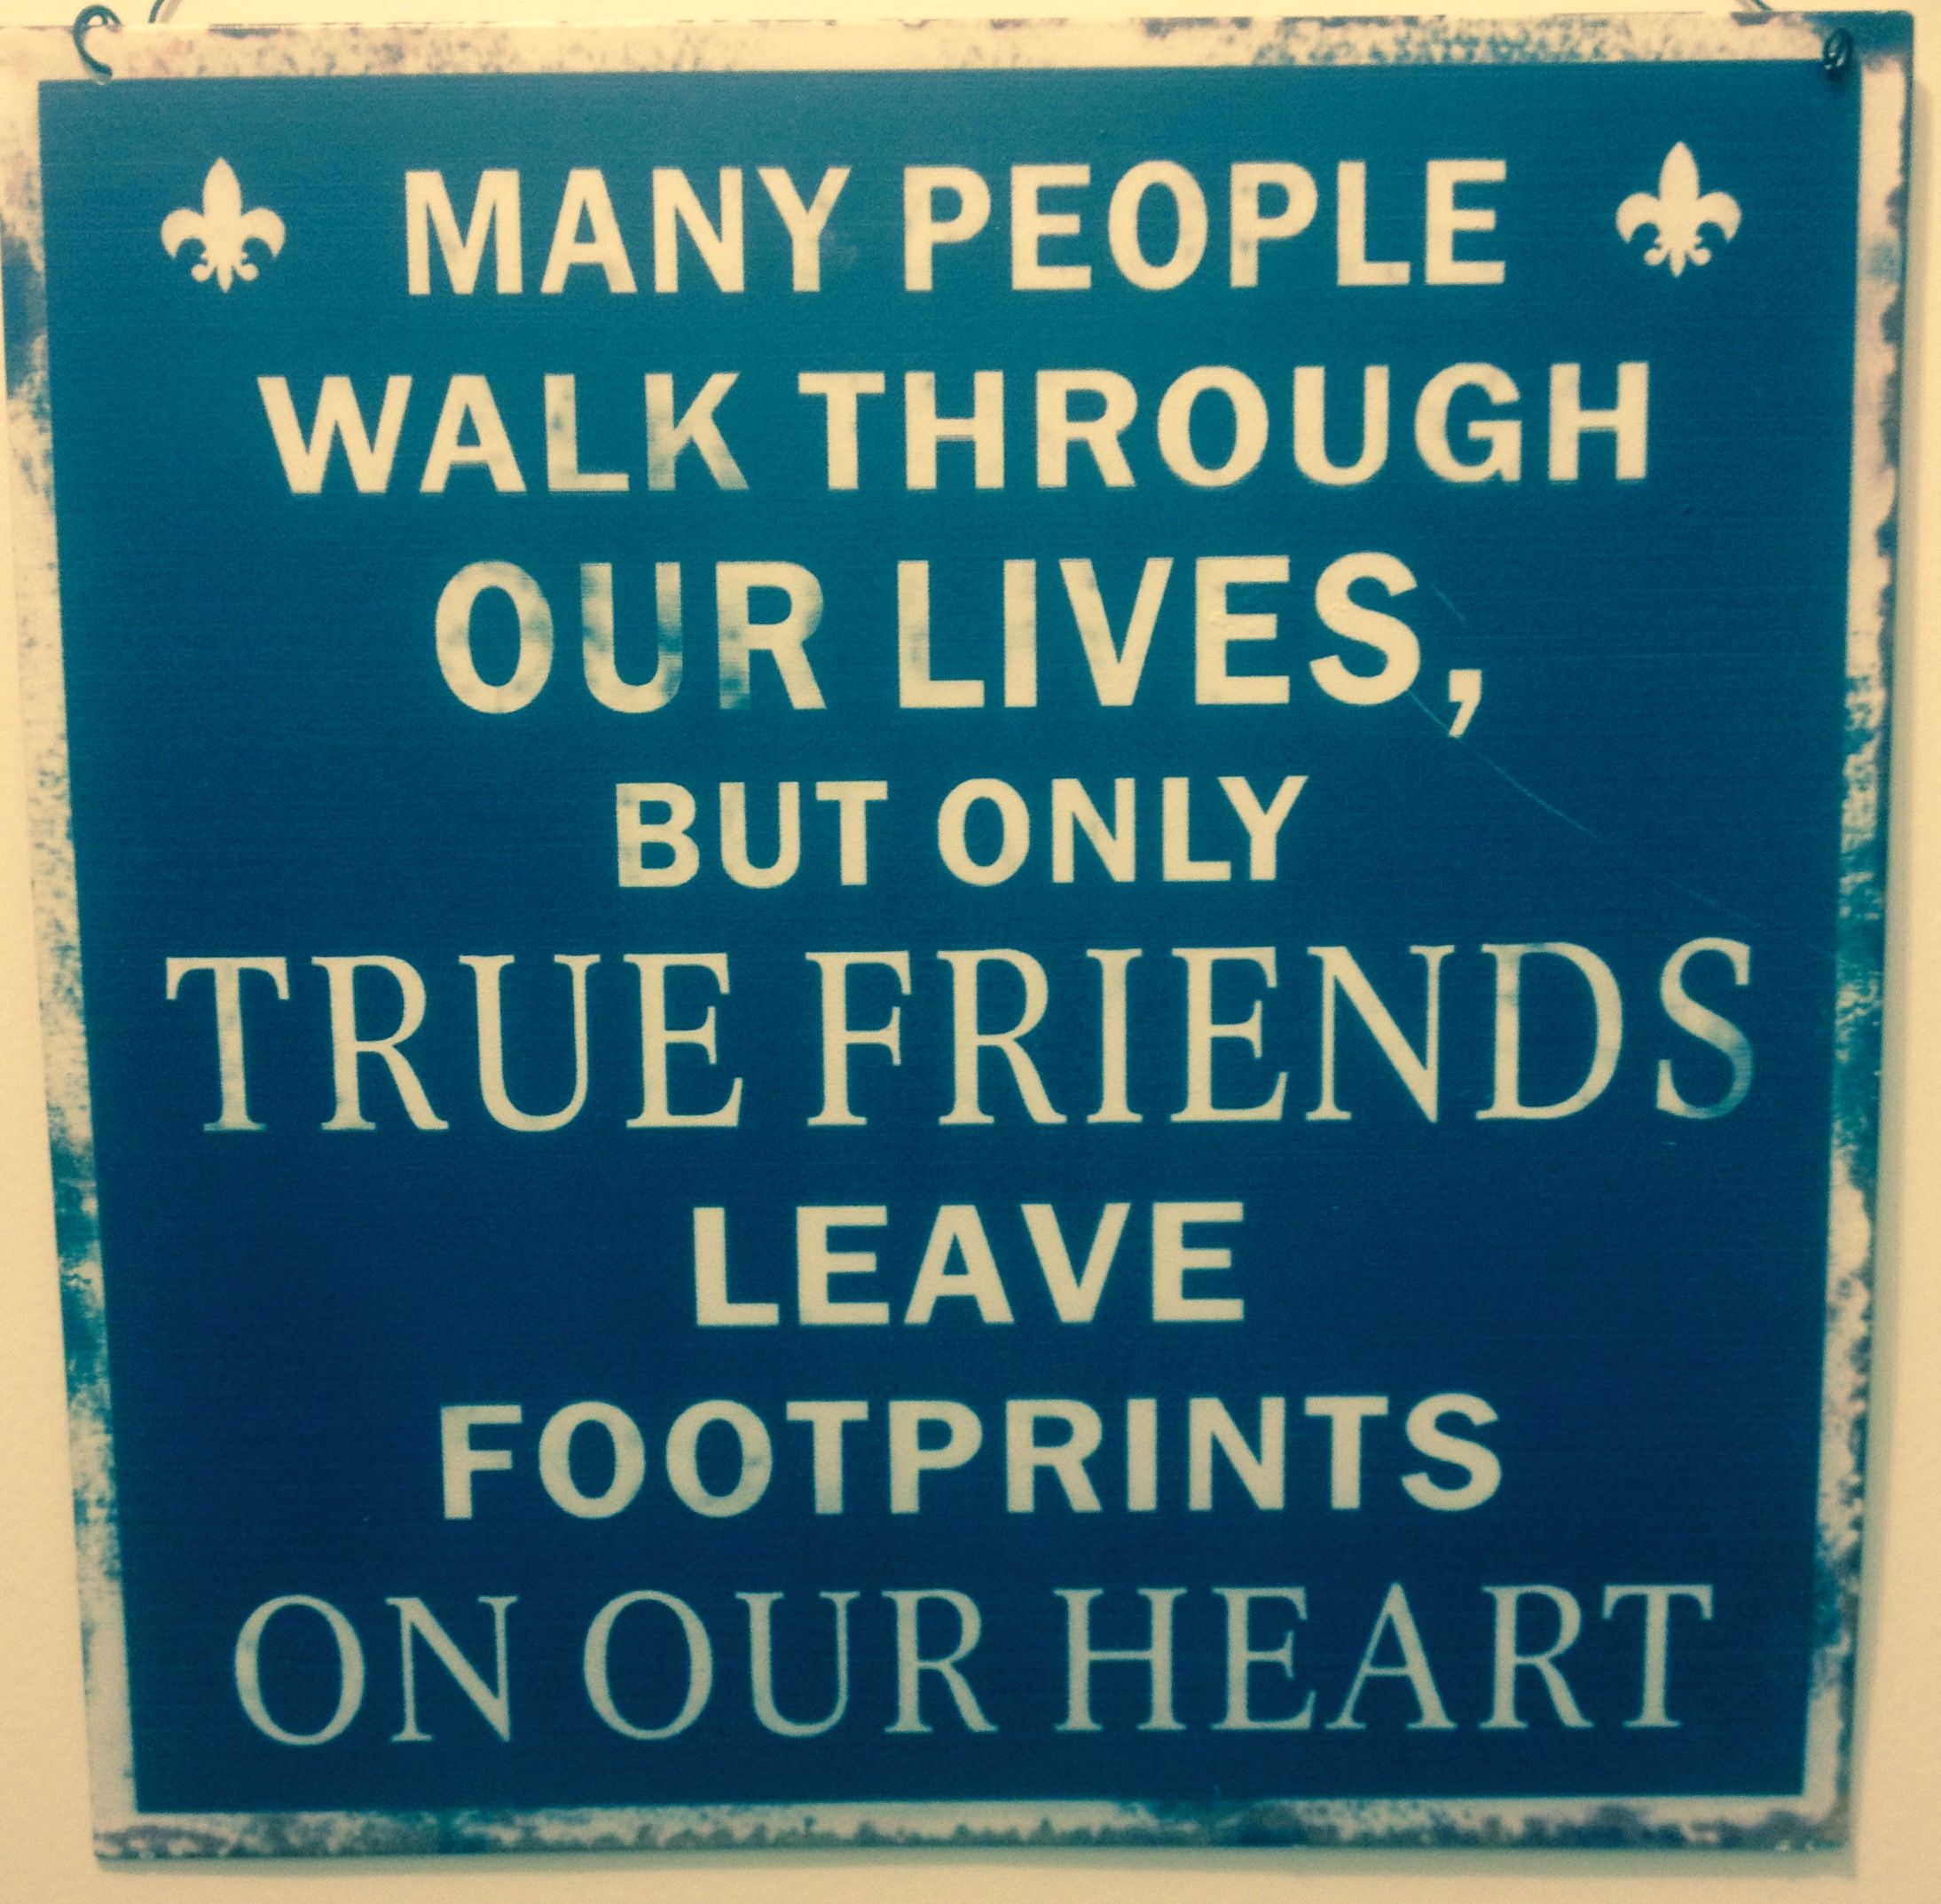 True Friends To Me Are Equal To Family Proverbs 17 17 Friends Love At All Times Friends Quotes Christian Verses Friends In Love